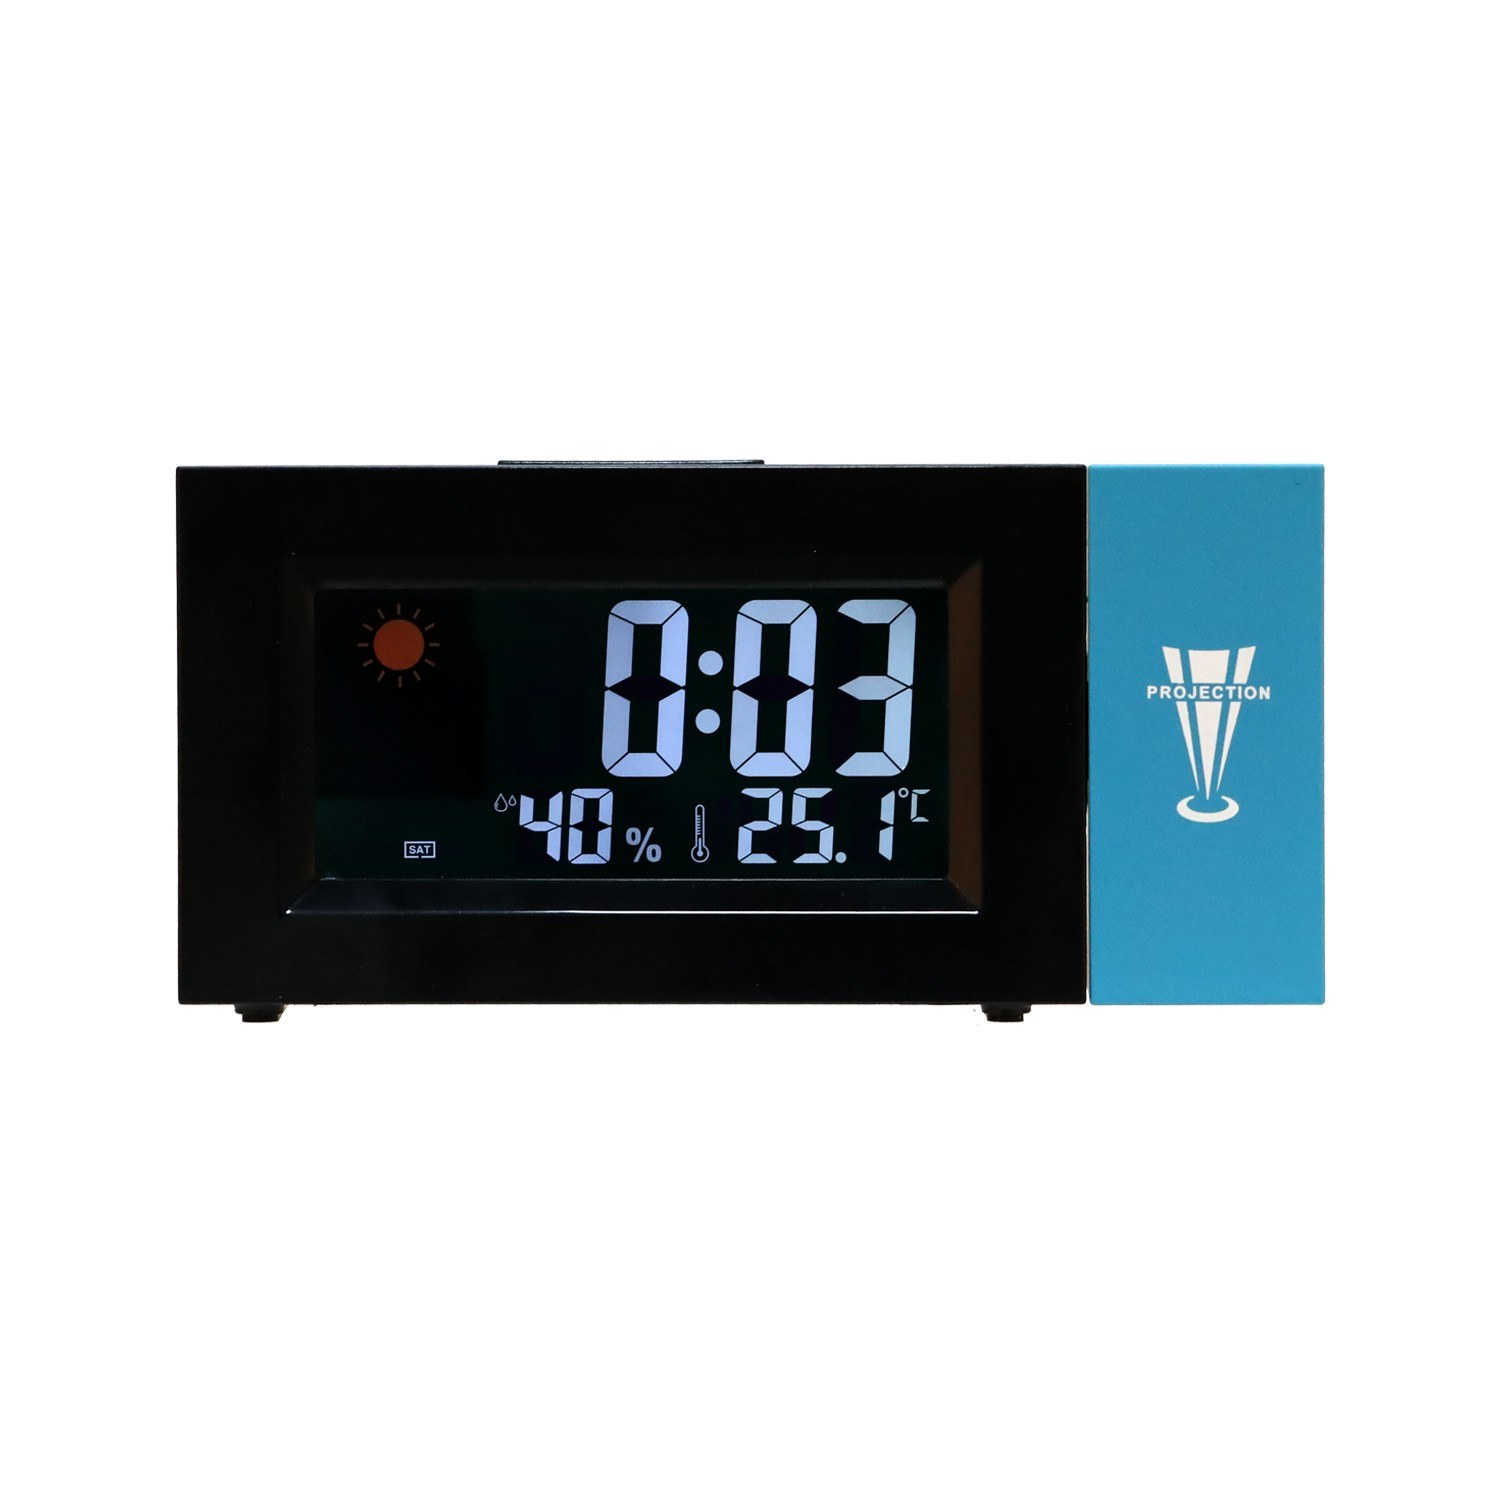 LED Backlight Digital Display Colorful Screen Weather Clock Weather Forecast Projection Clock Rotating Alarm Clock Temperature Humidity Clock